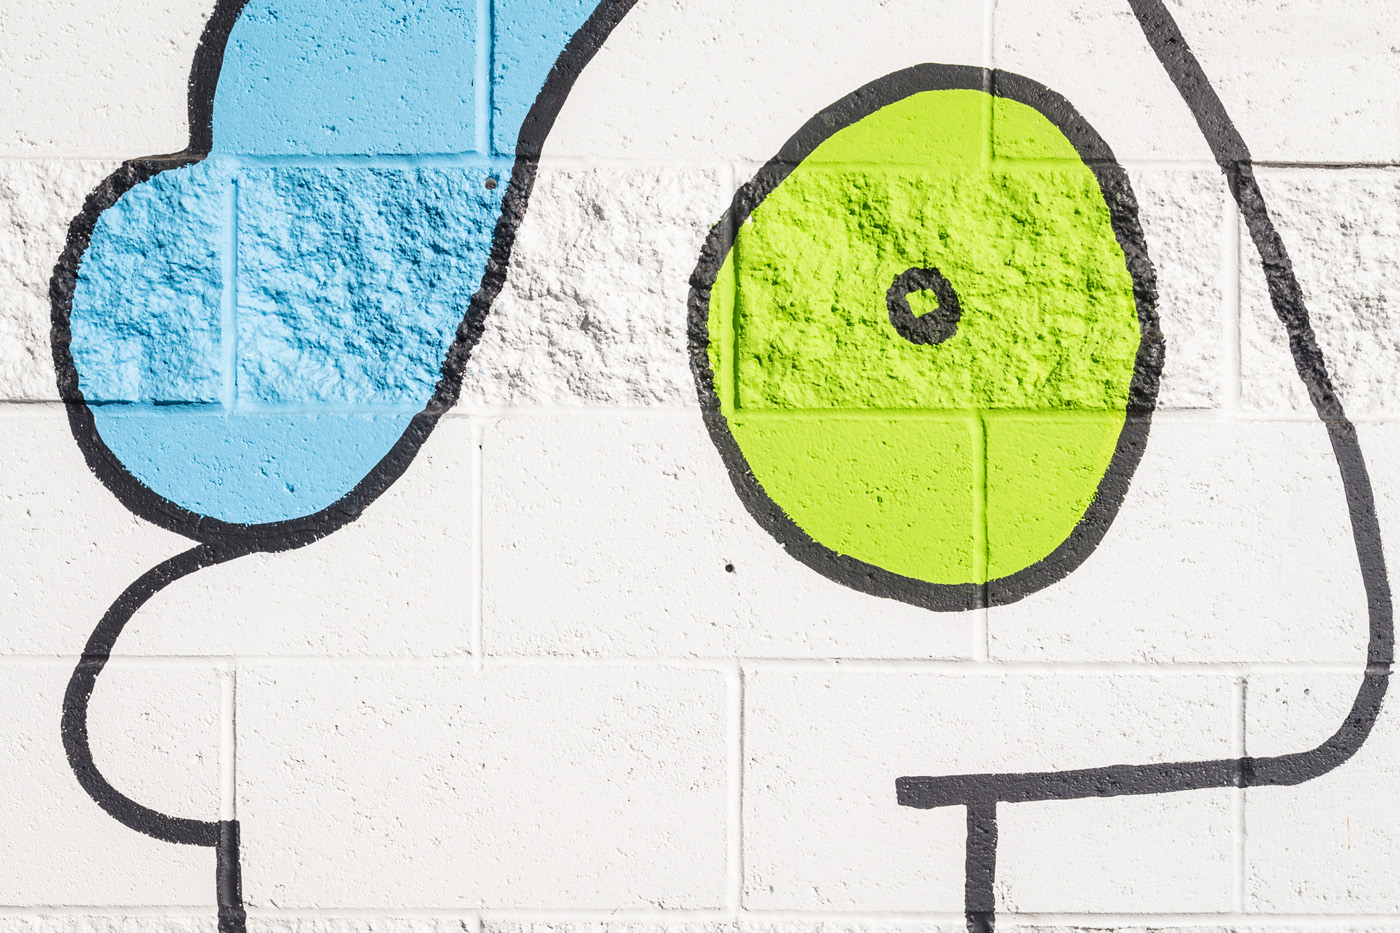 Thierry Noir Los Angeles NOHO Mural-13